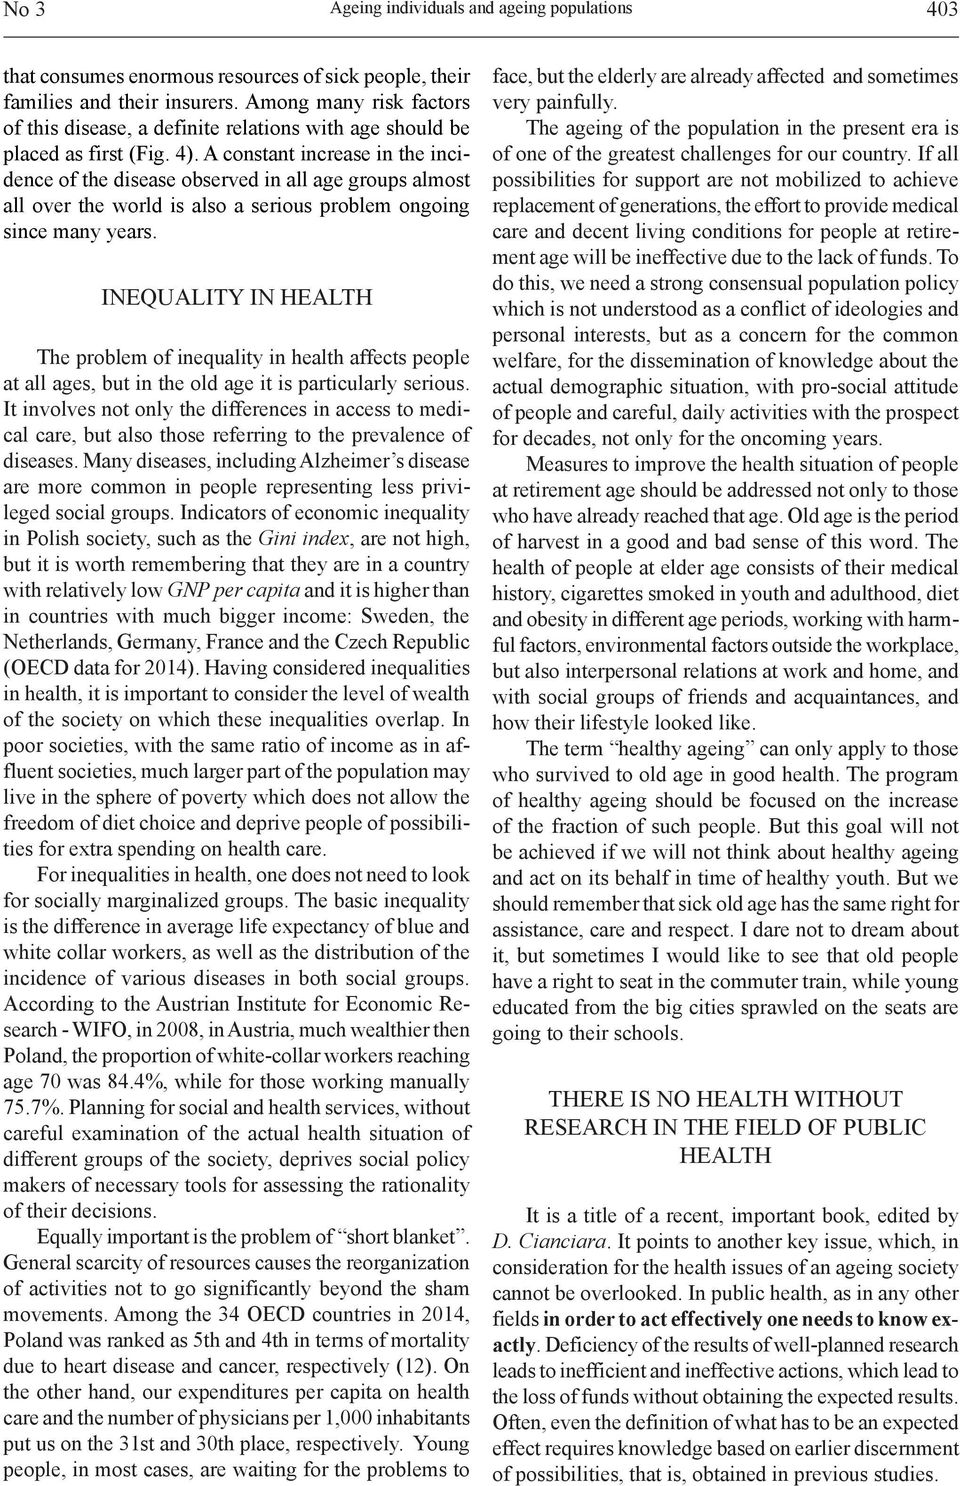 """health issues of indigenous australians essay Essay on indigenous health australia is a result of historic factors as well as contemporary socio-economic issues"""" law and indigenous australians essay."""